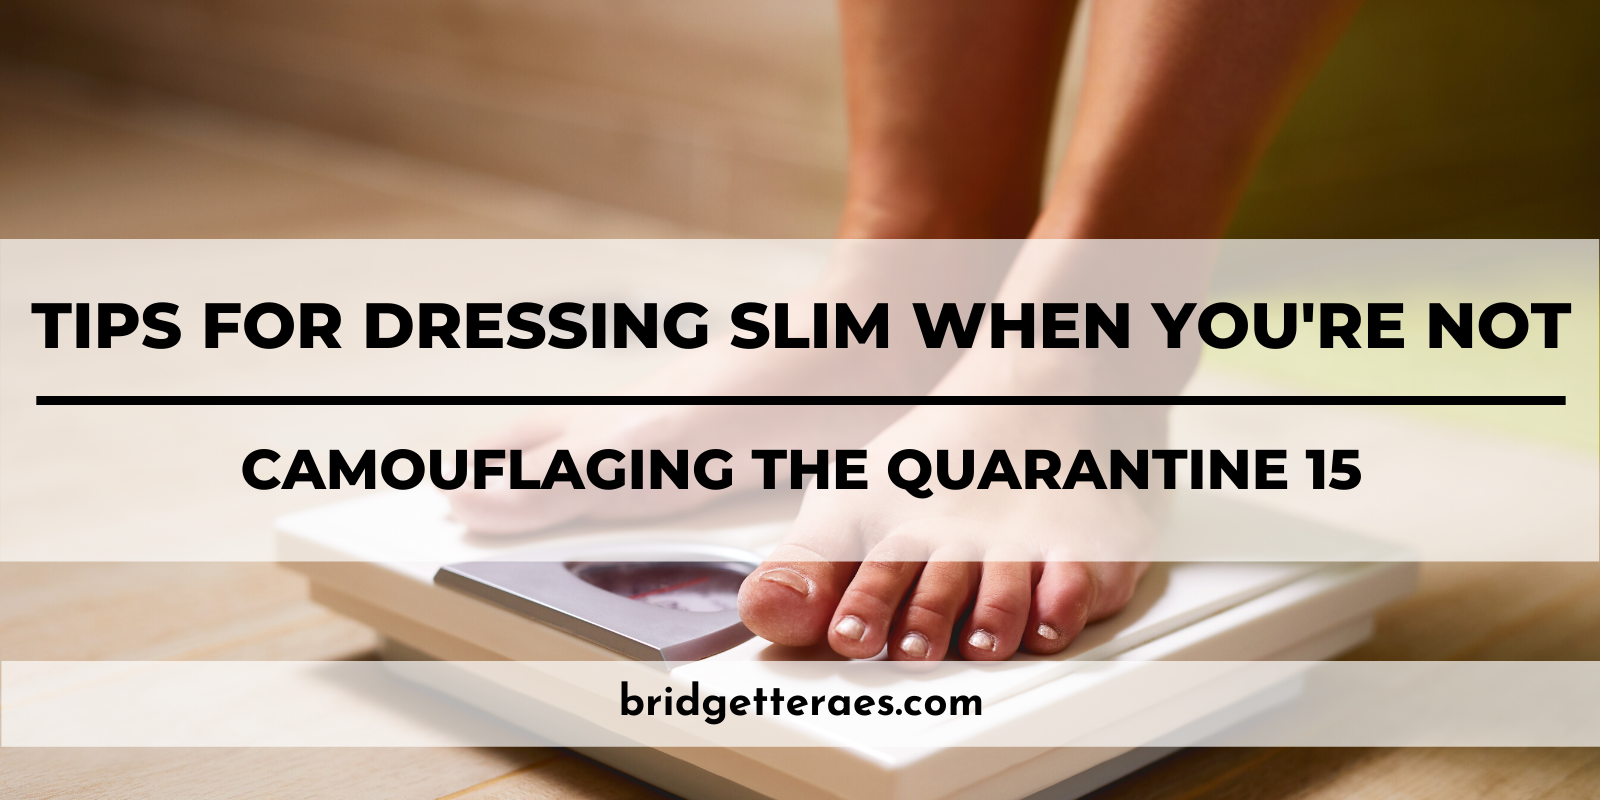 Tips for Dressing Slim When You're Not: Camouflaging the Quarantine 15